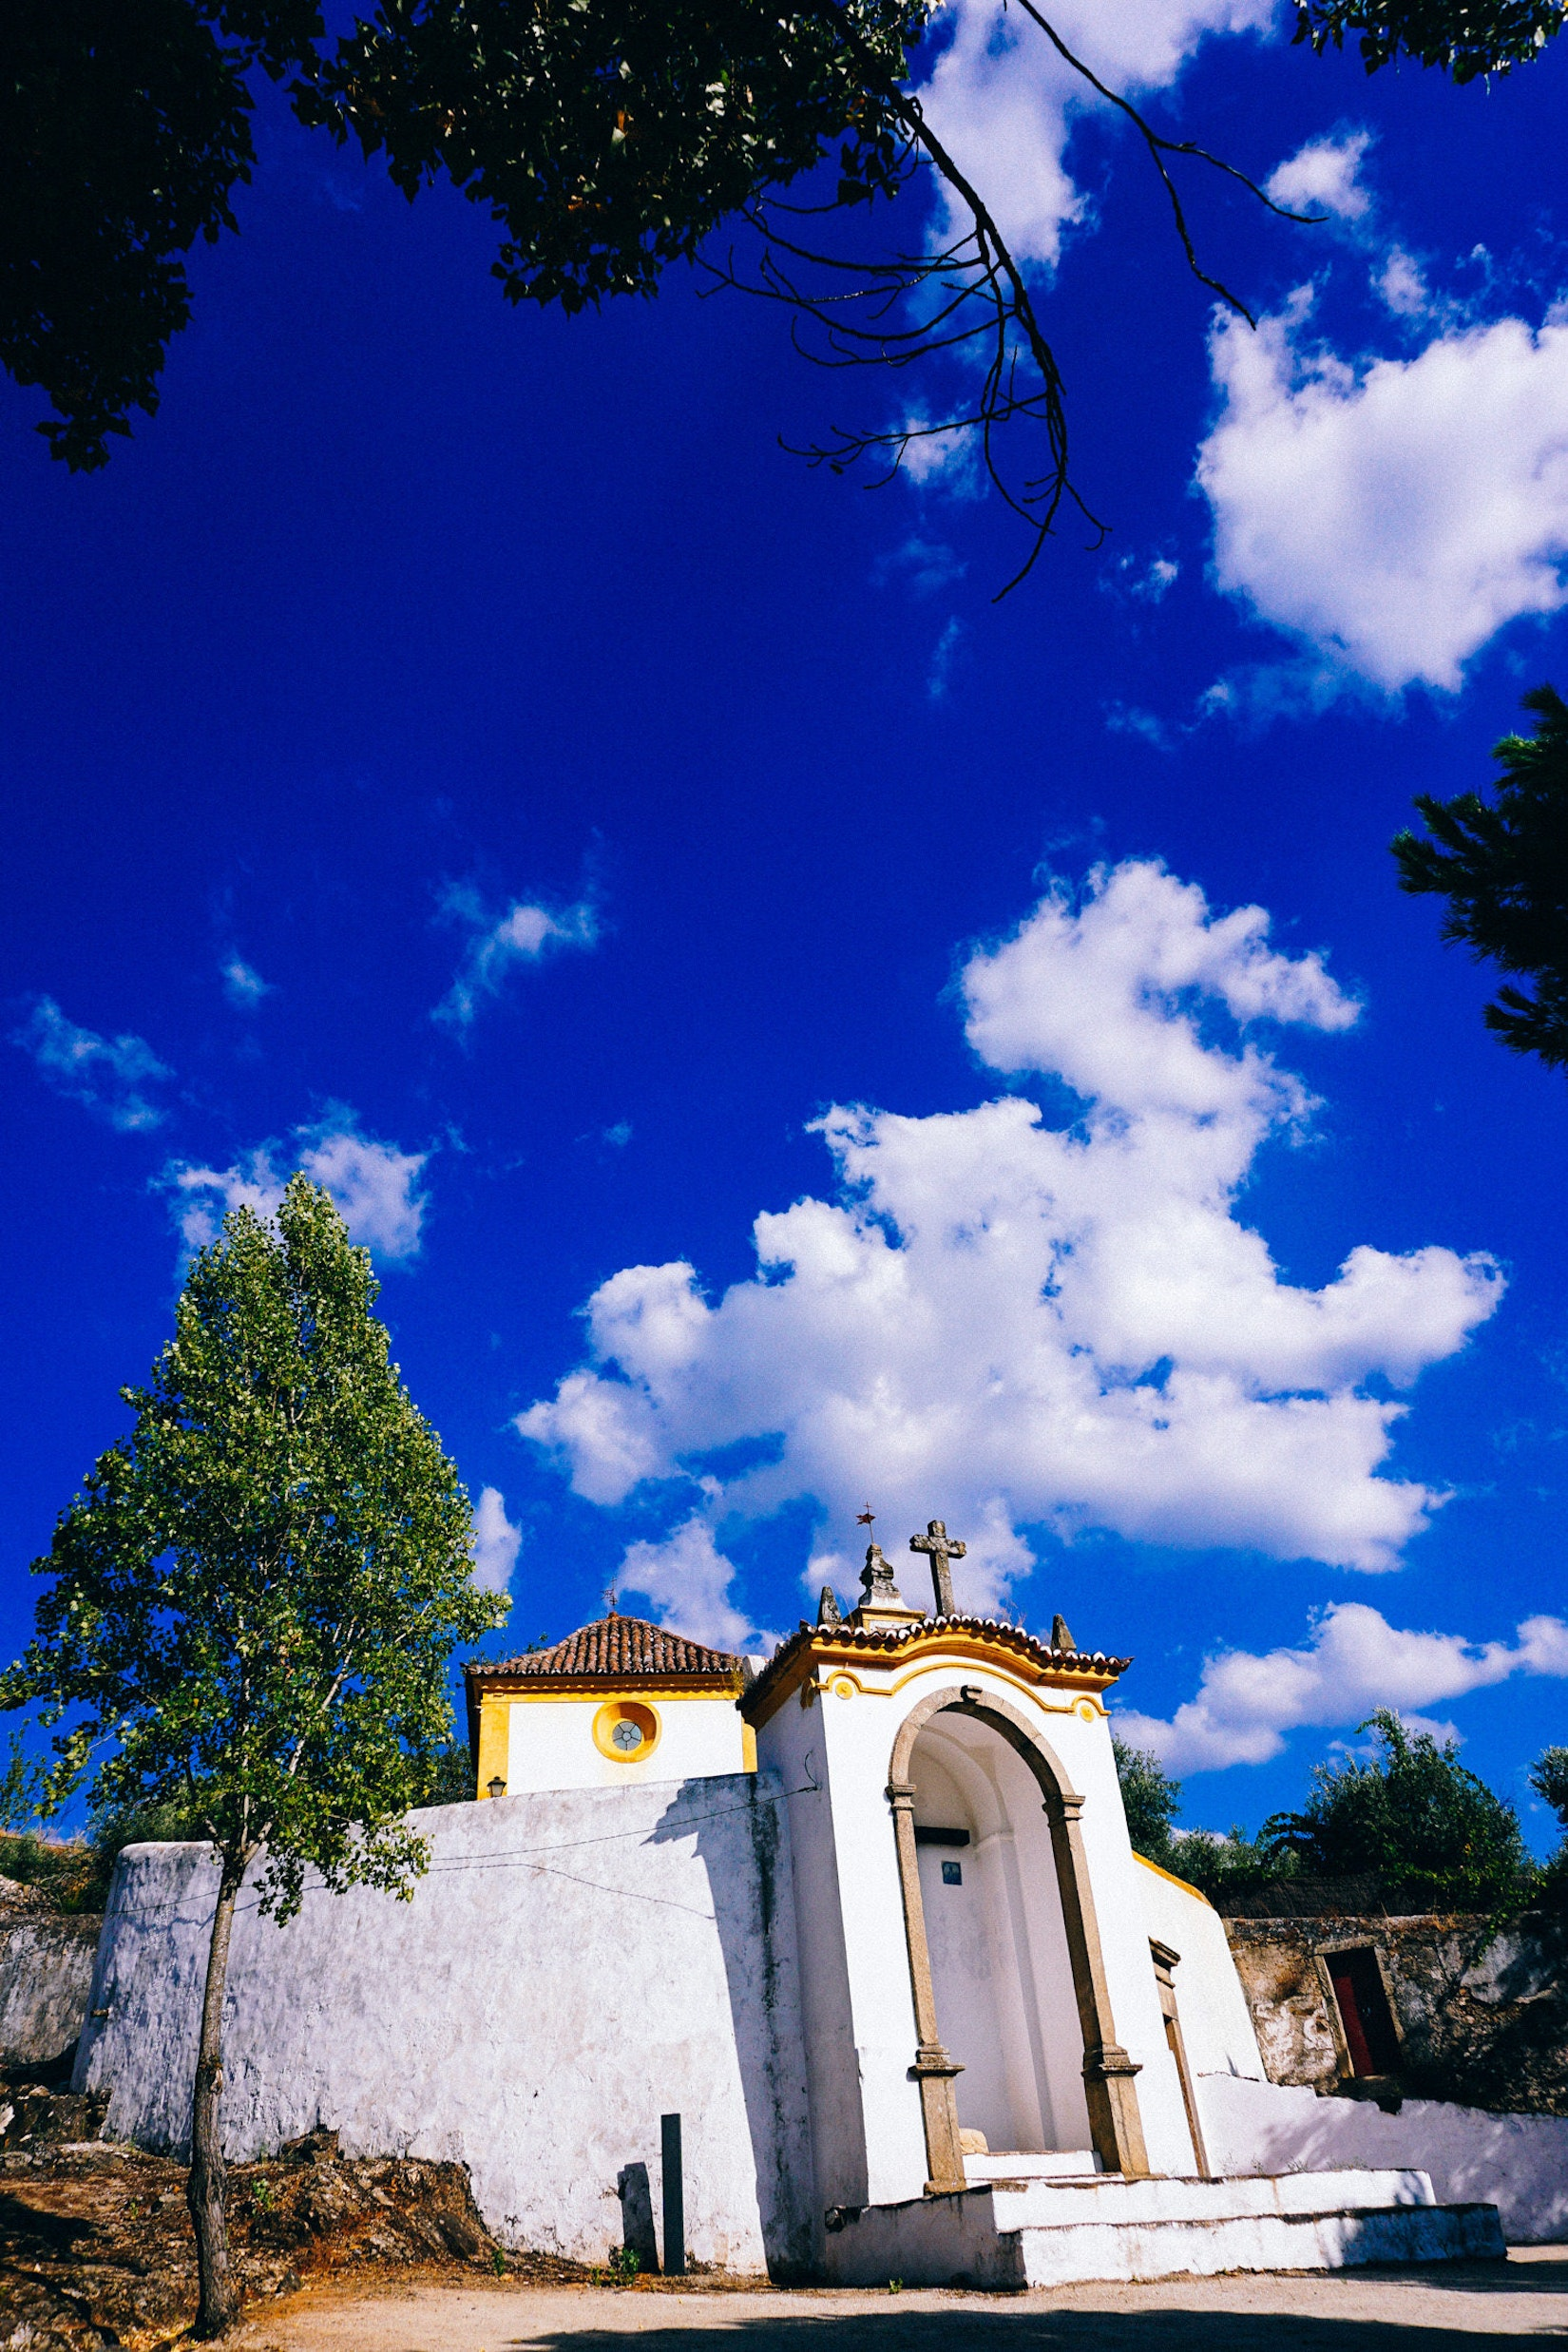 Small white church in Castelo de Vide, Portugal